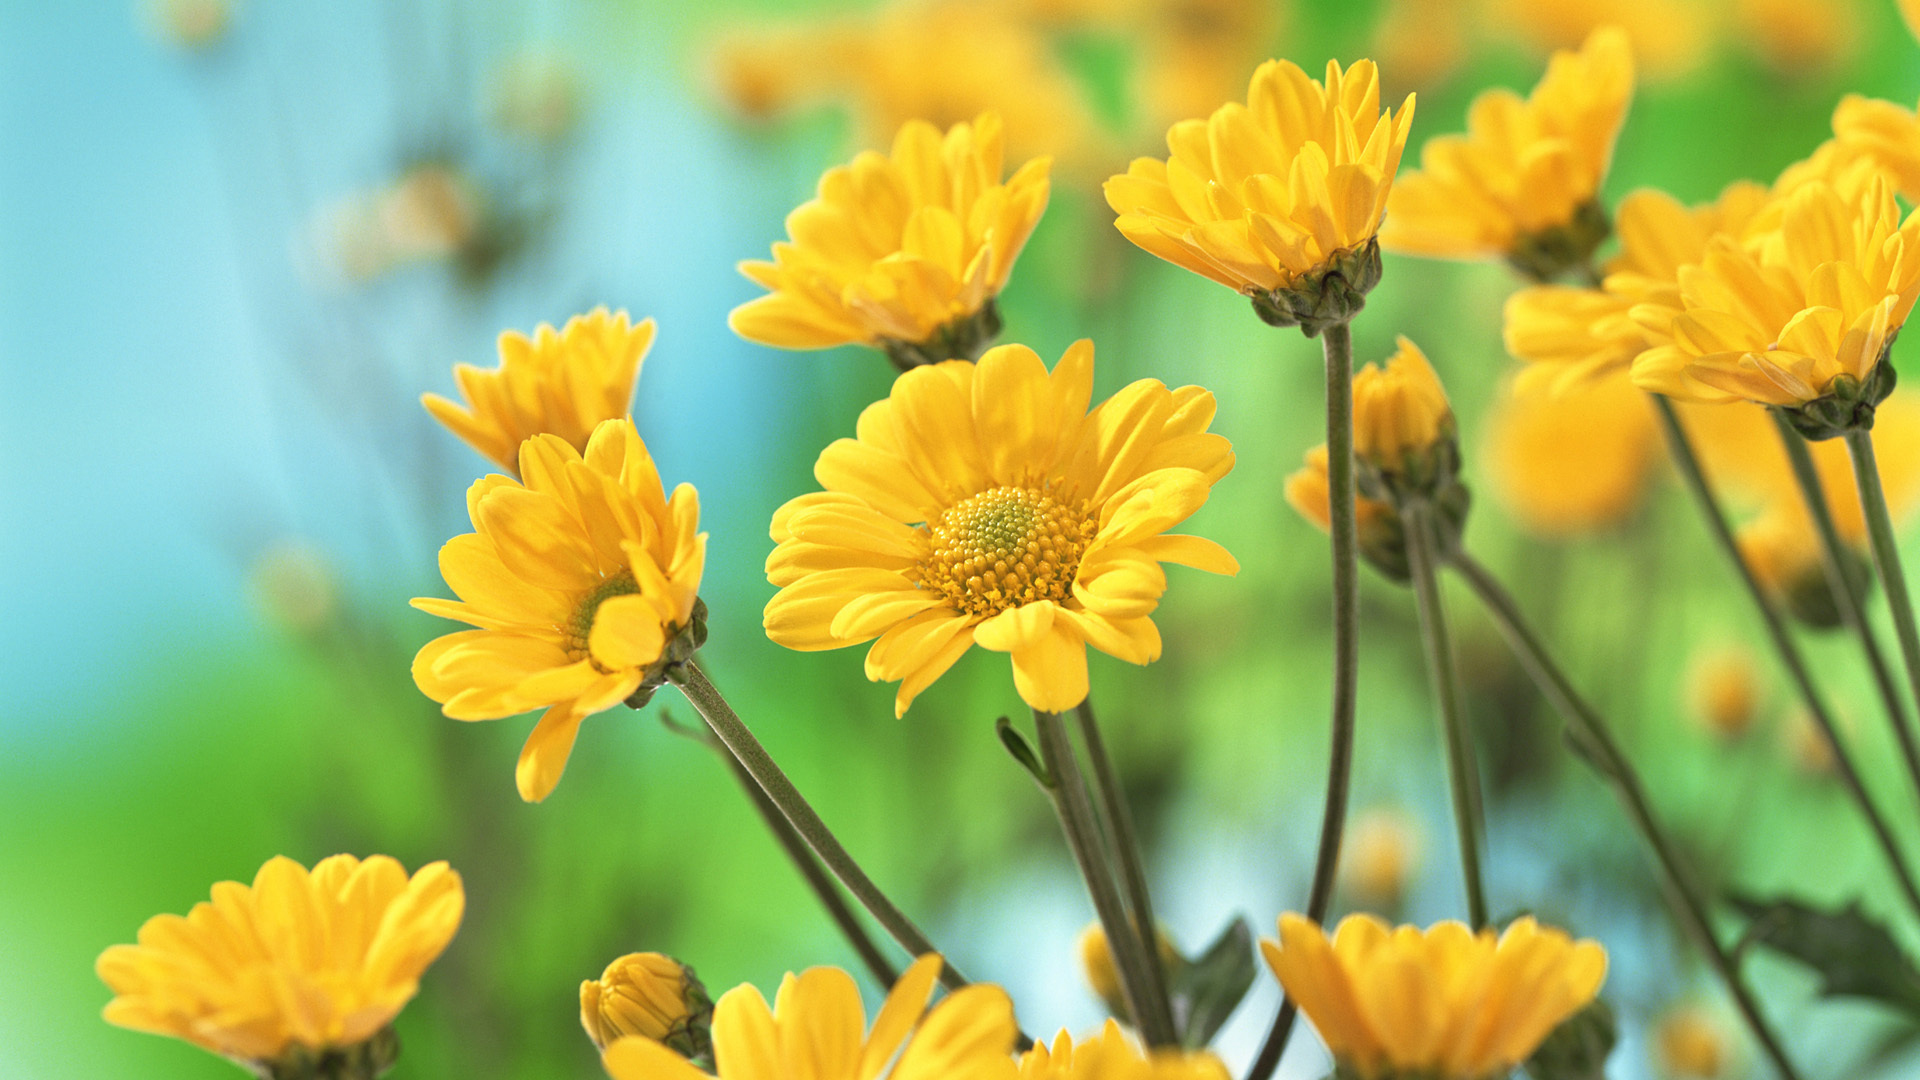 yellow cosmose hd flowers wallpapers free download images